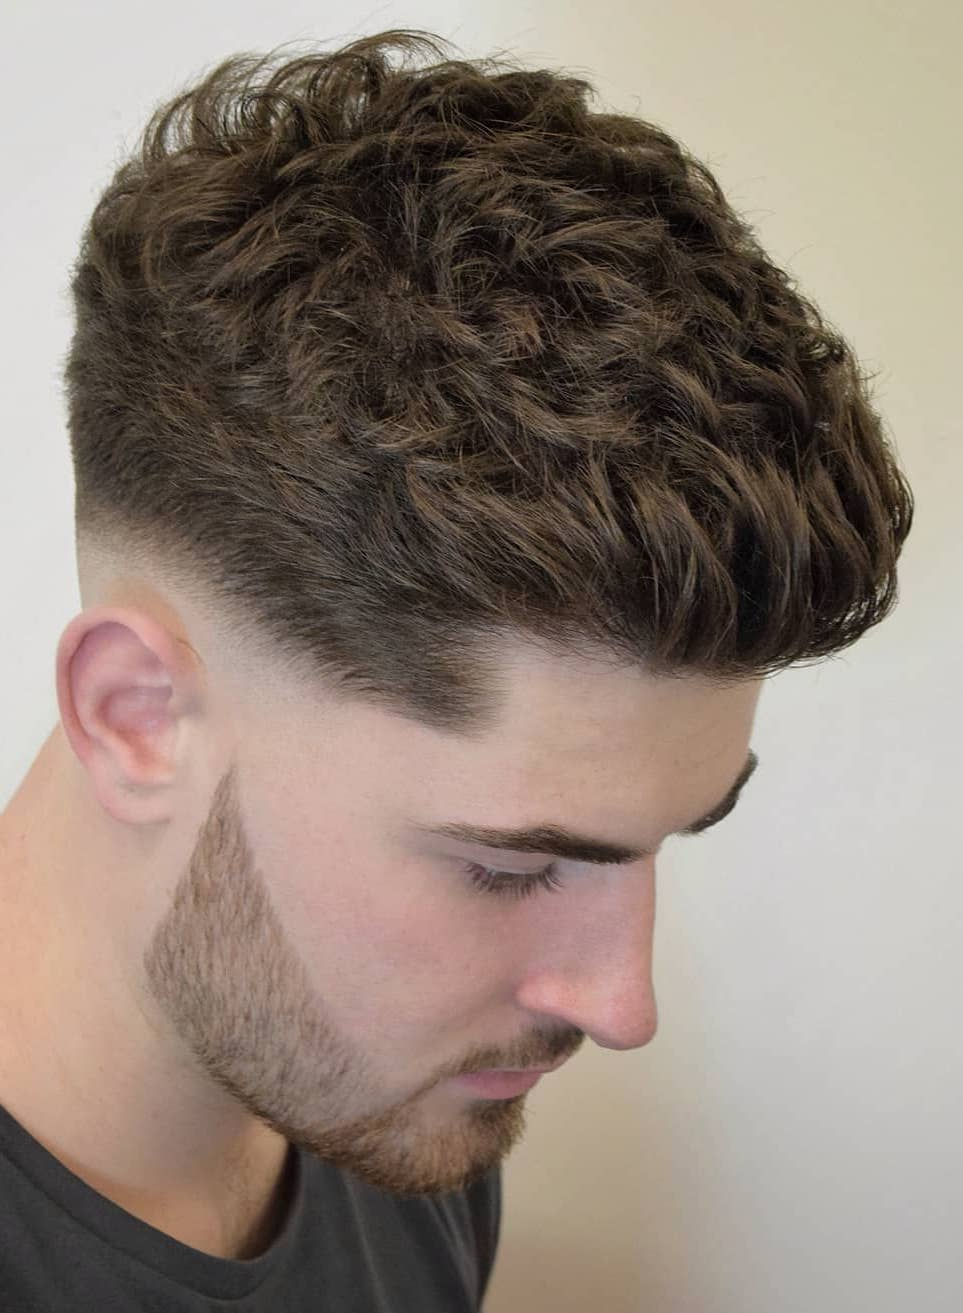 Exciting Textured Hair Styles for Men